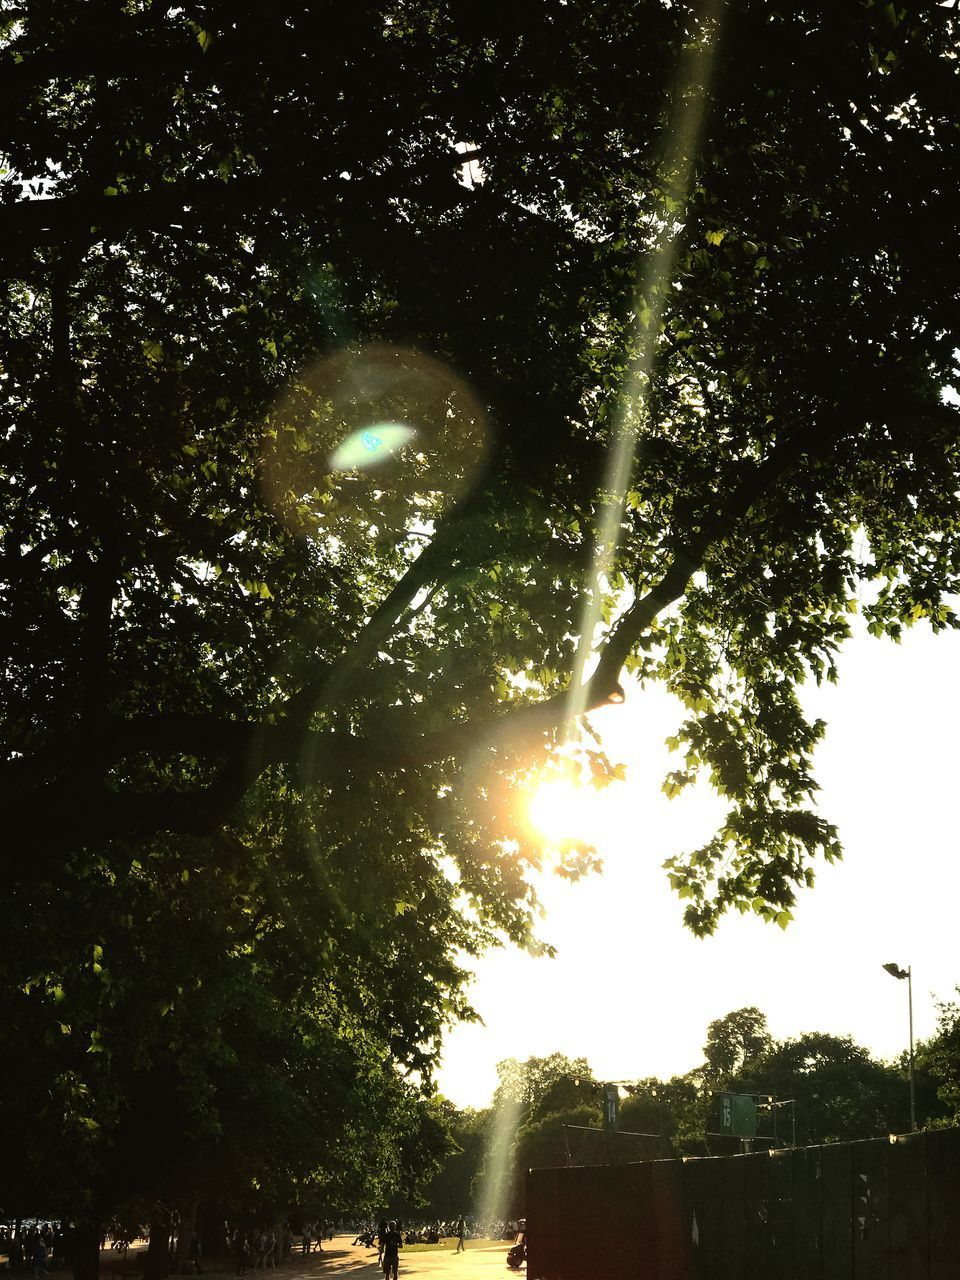 tree, sun, sunbeam, lens flare, sunlight, nature, outdoors, low angle view, no people, beauty in nature, scenics, built structure, growth, day, tranquility, building exterior, branch, architecture, sky